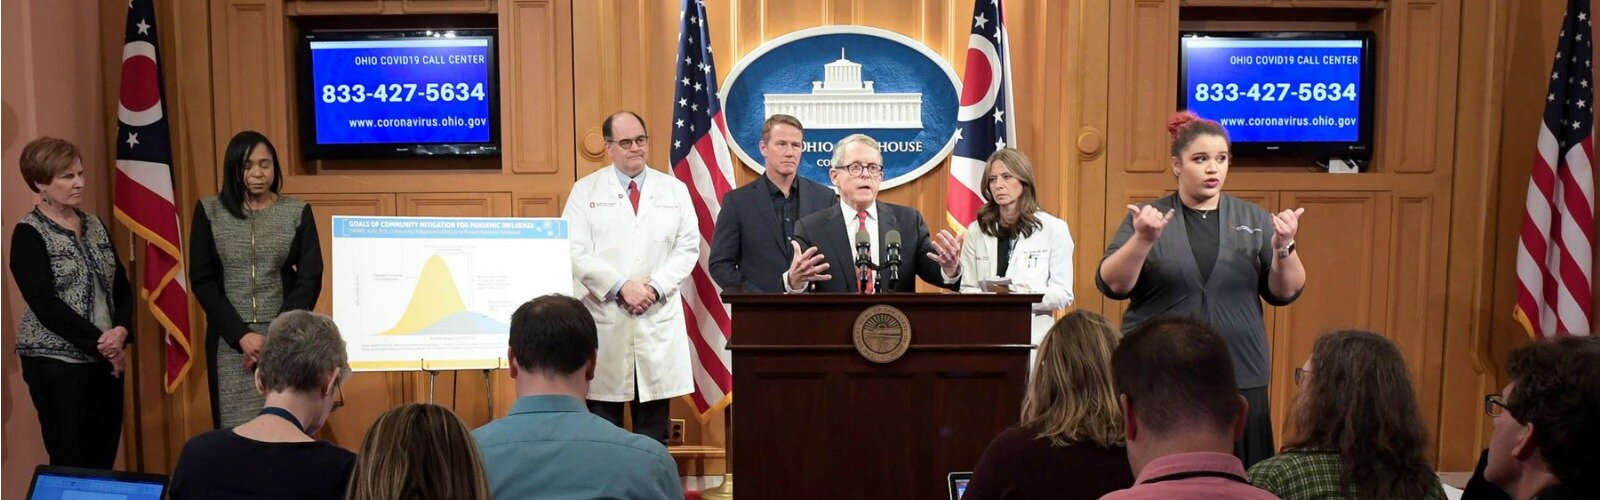 Governor Mike DeWine and his team of first responders speak about the first cases of COVID-19 in Ohio.